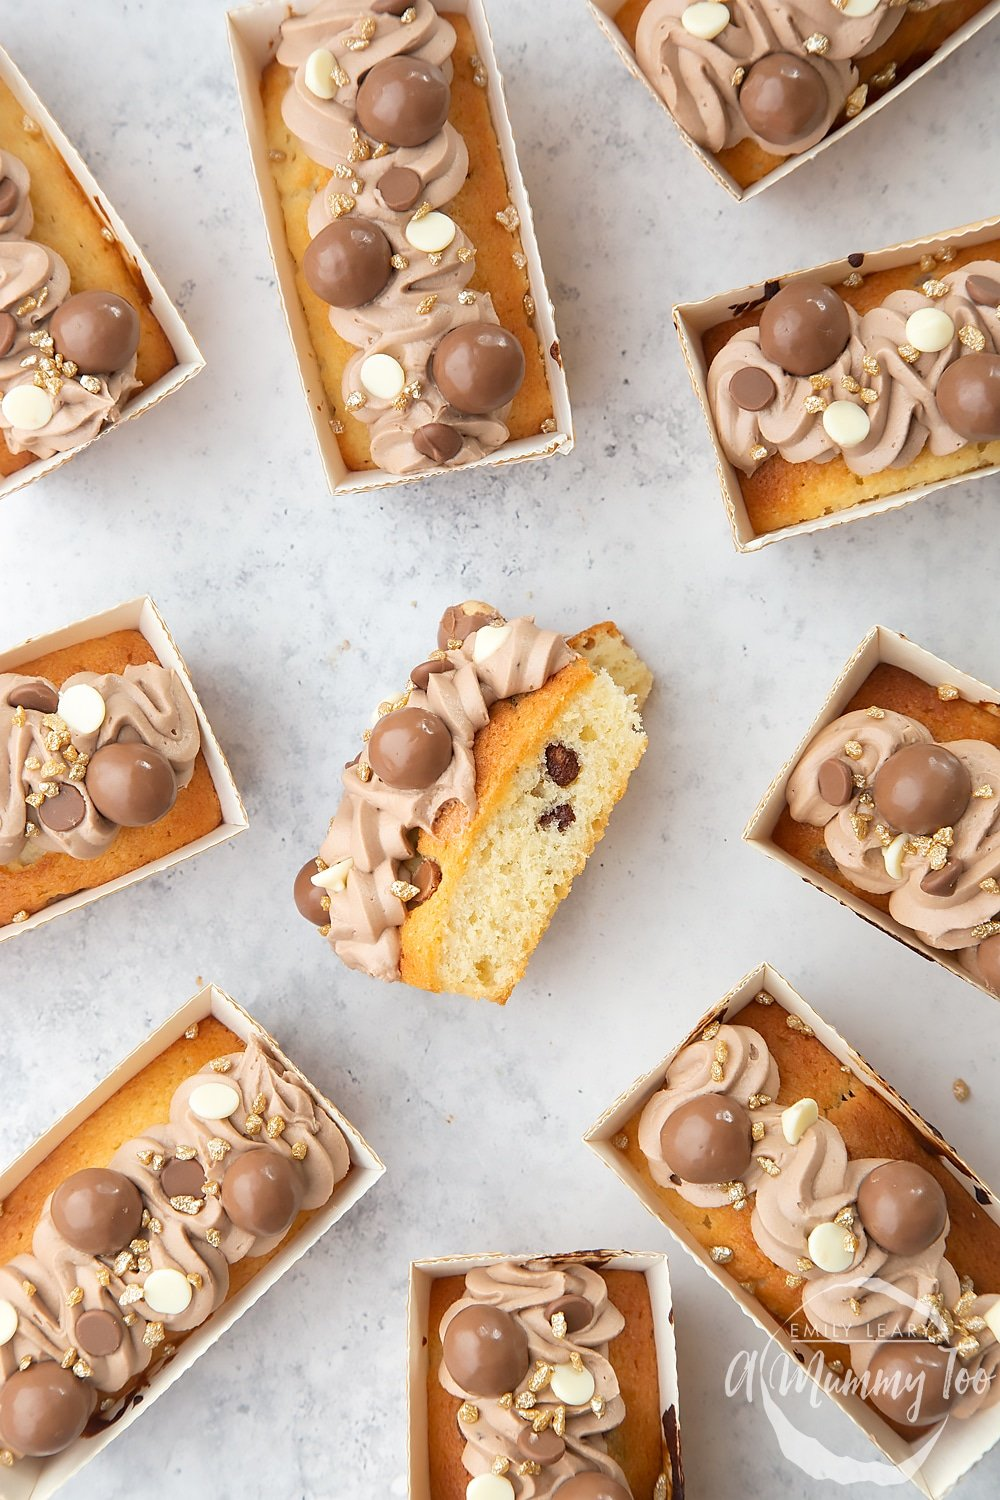 Chocolate chip mini-loaves with chocolate frosting